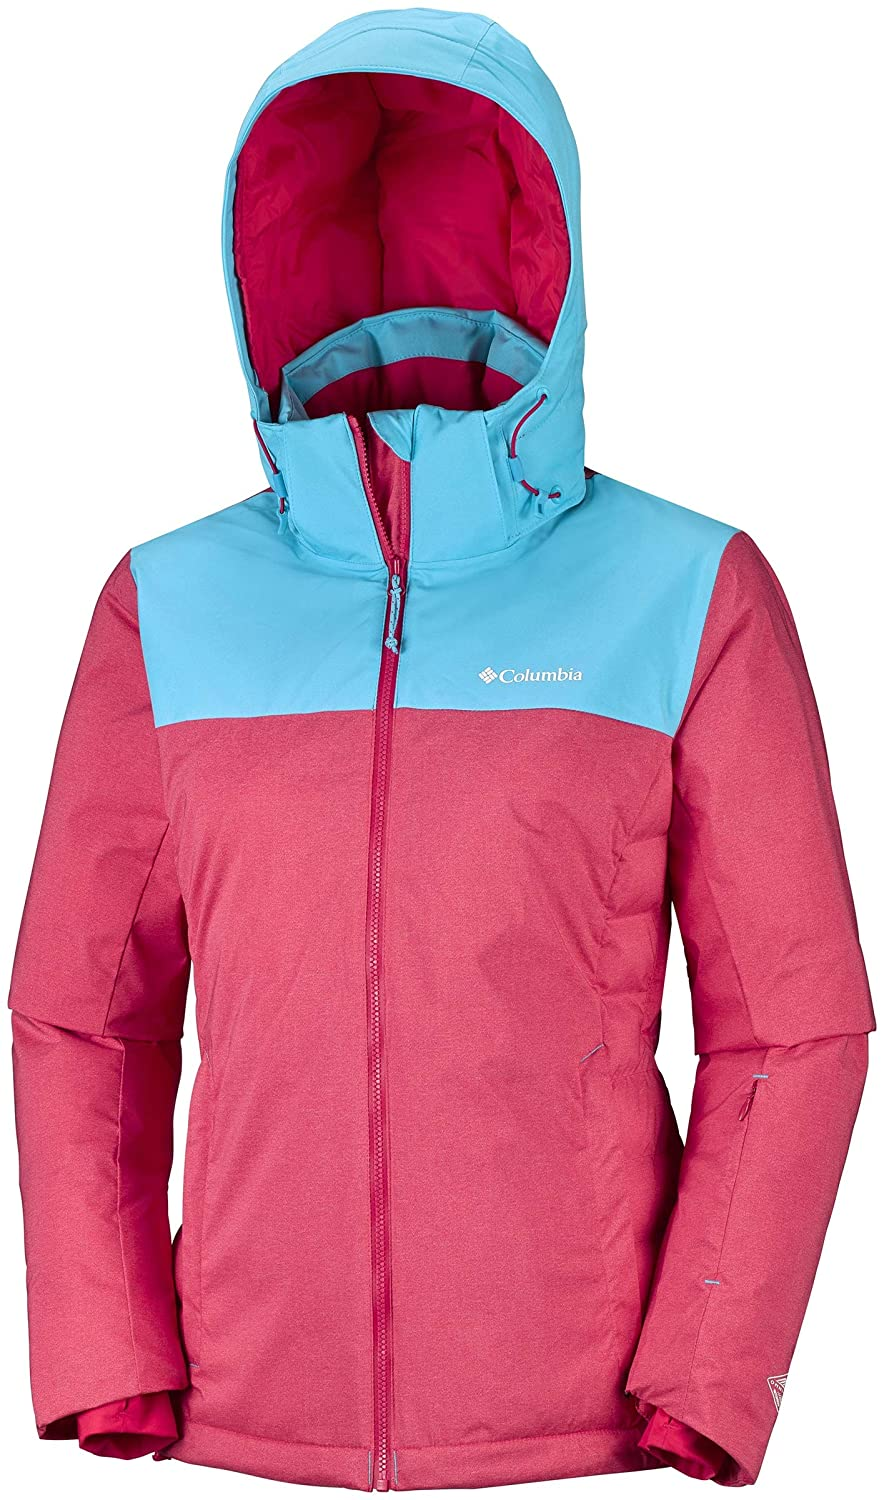 Columbia Chaqueta impermeable para mujer 1748341 Poli/éster Snow Dream Jacket